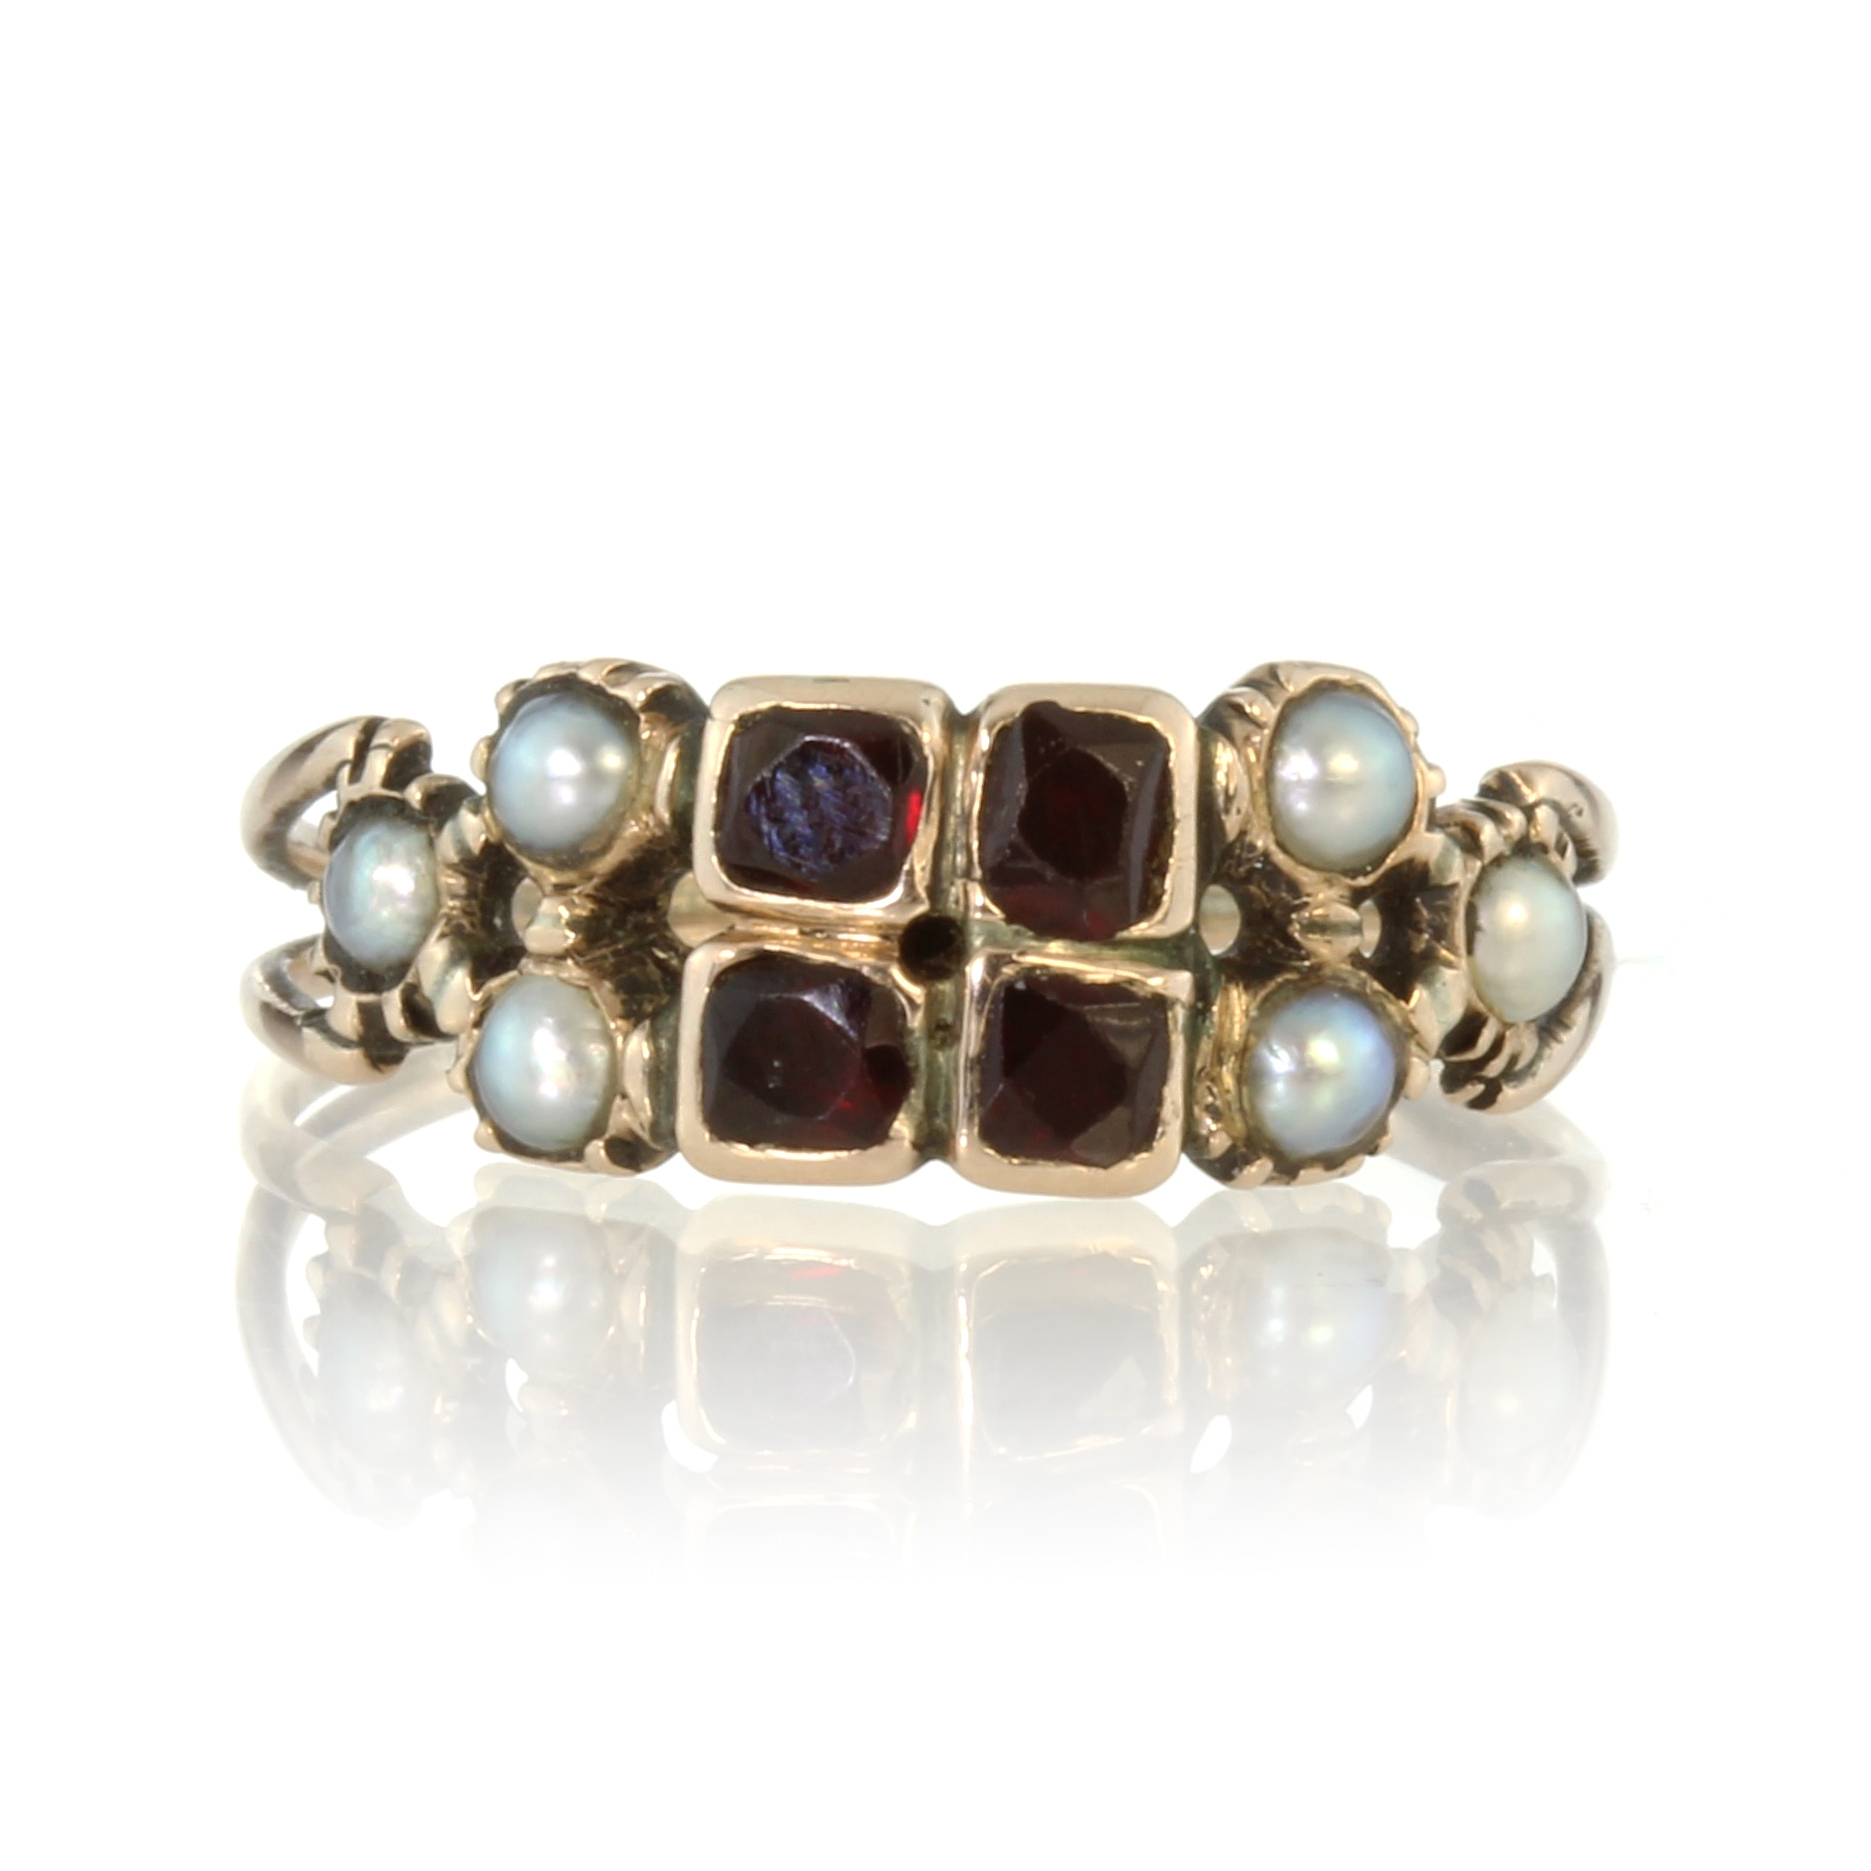 Los 57 - An antique Georgian garnet and seed pearl dress ring in high carat yellow gold, set with four old